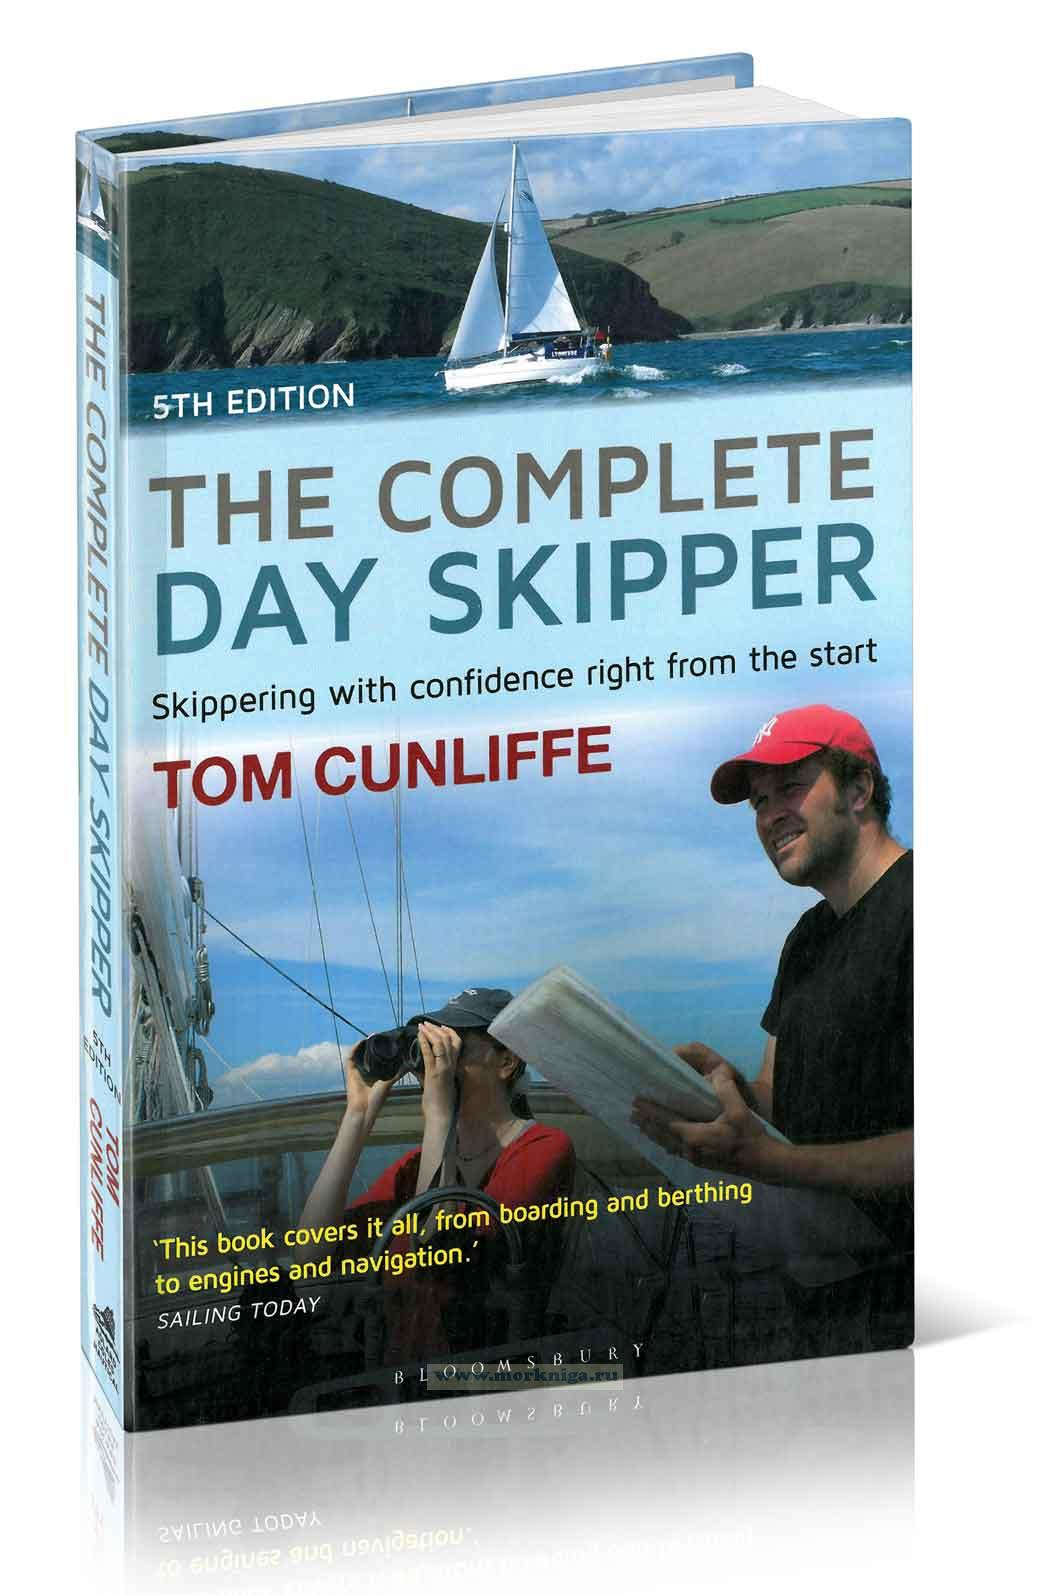 The Complete Day Skipper. 5th edition